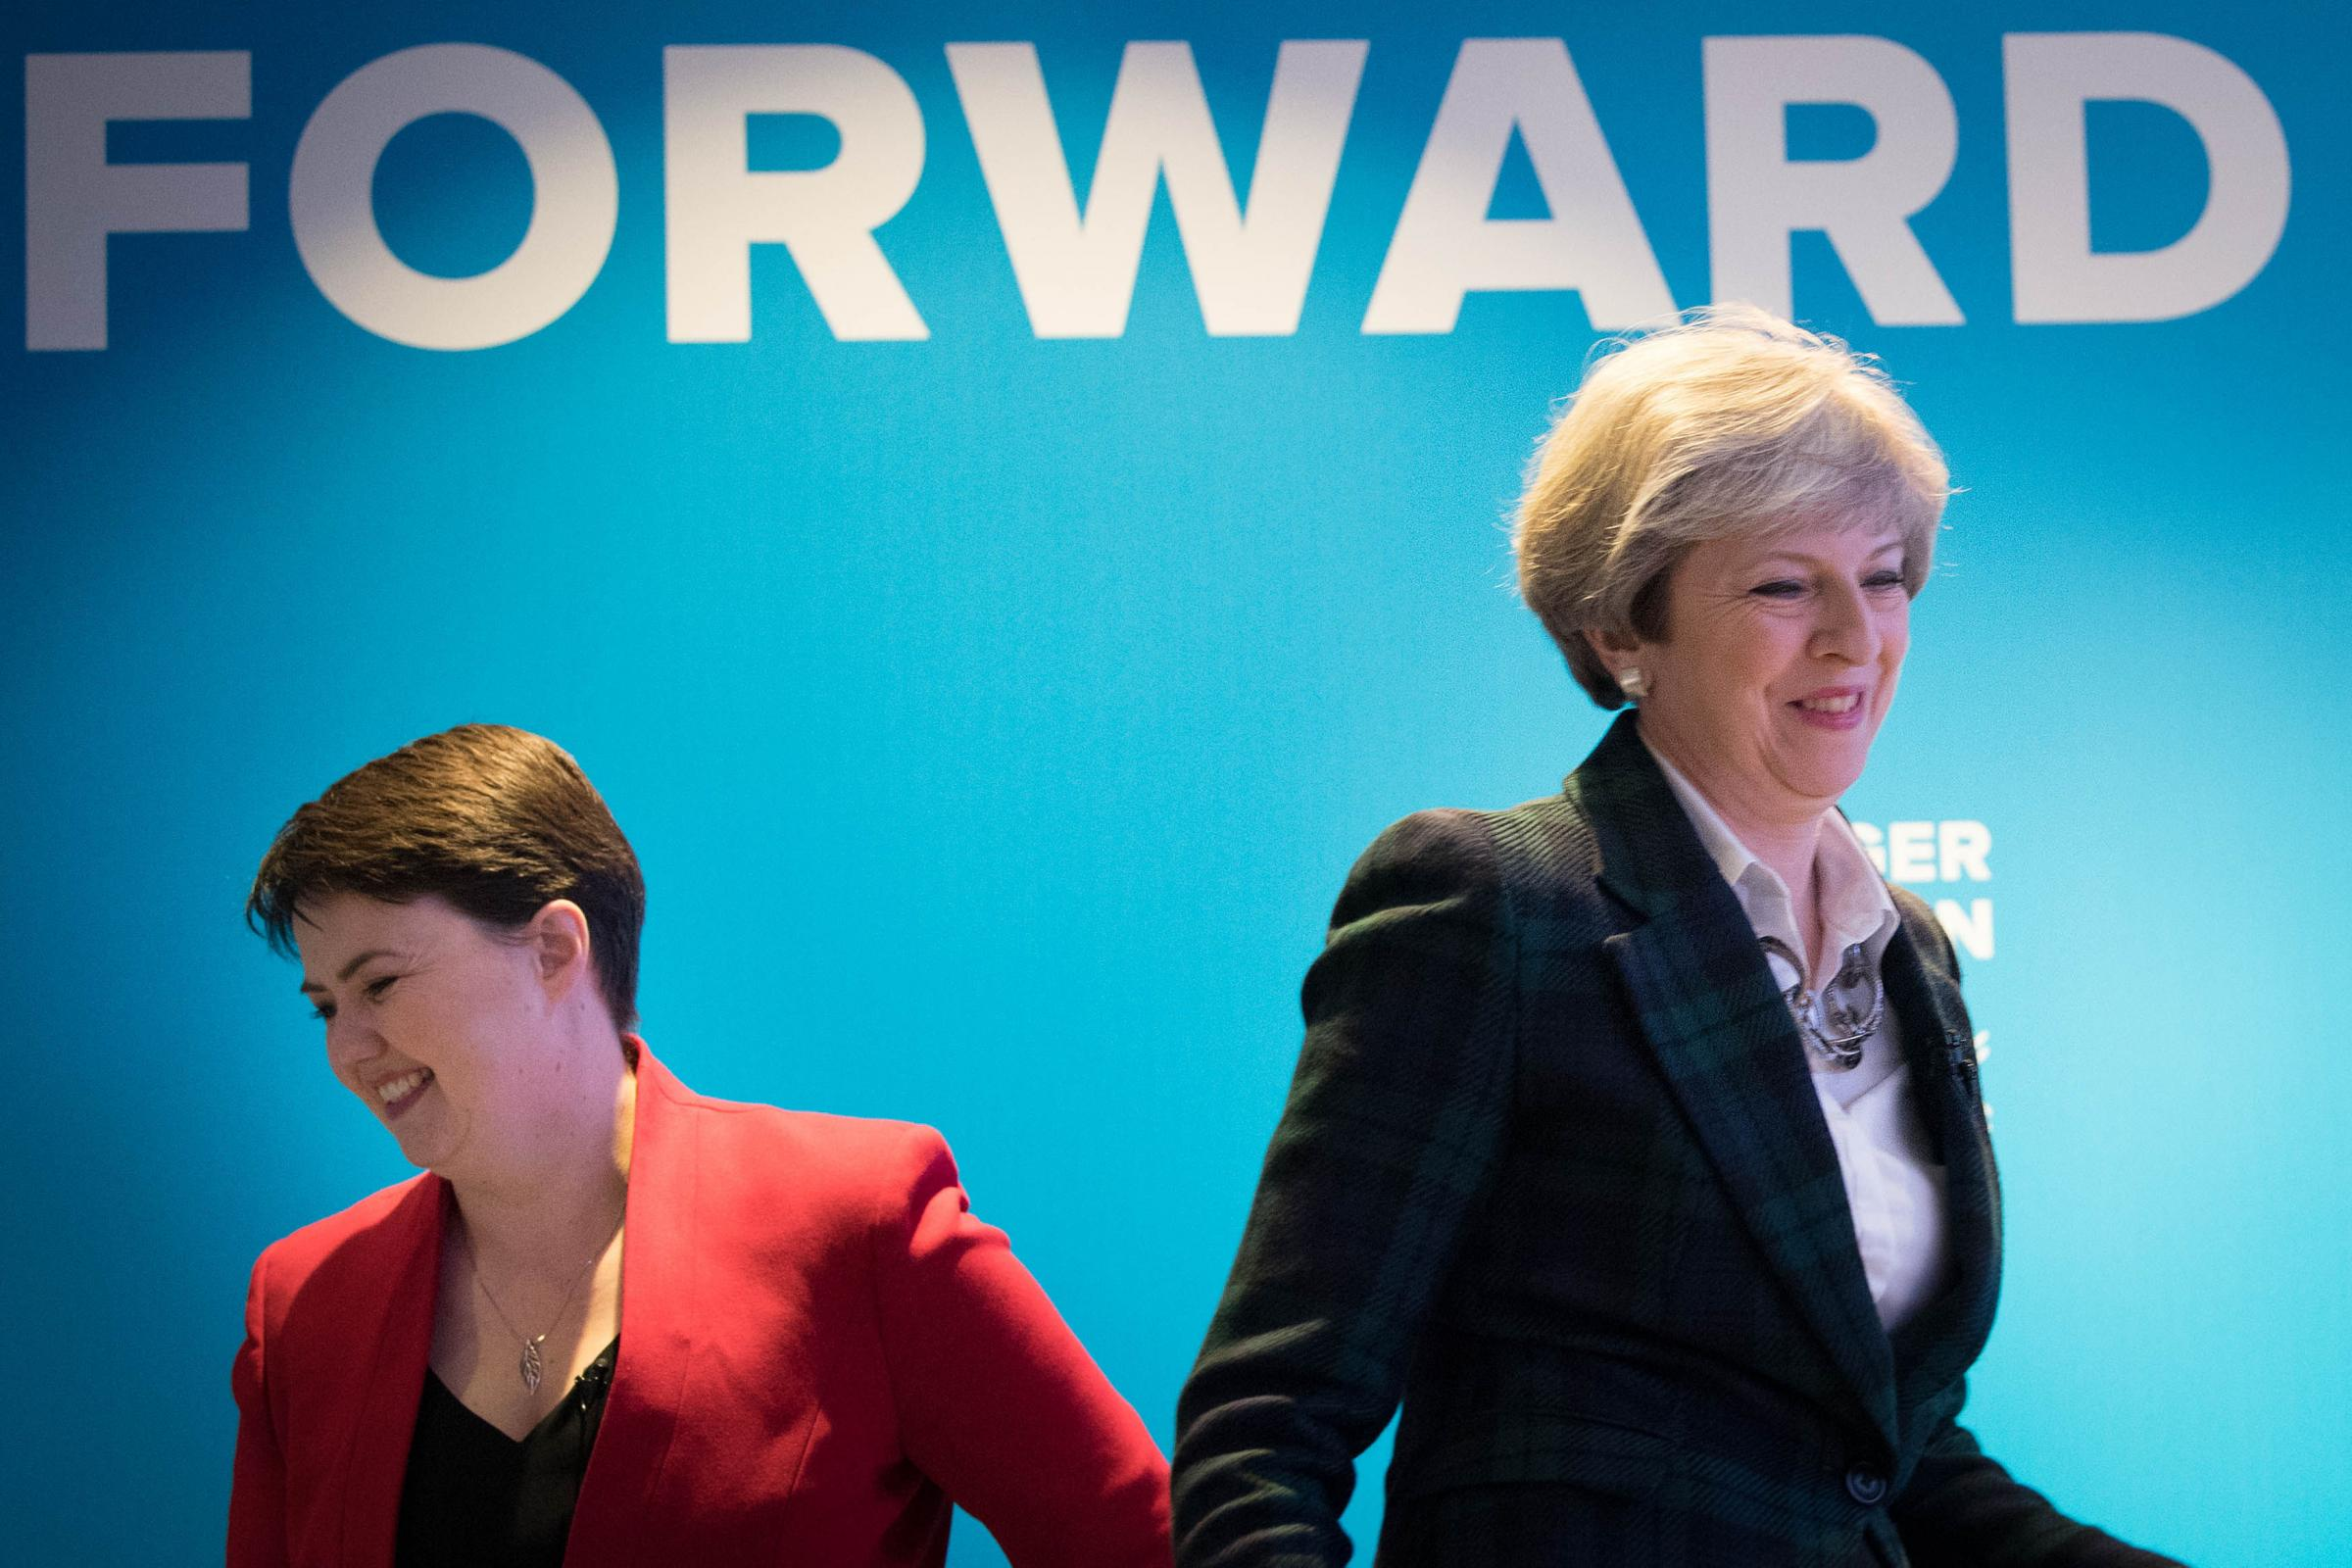 Ruth Davidson gave the impression her MPs would back the SNP's amendment ... instead they backed Theresa May's government